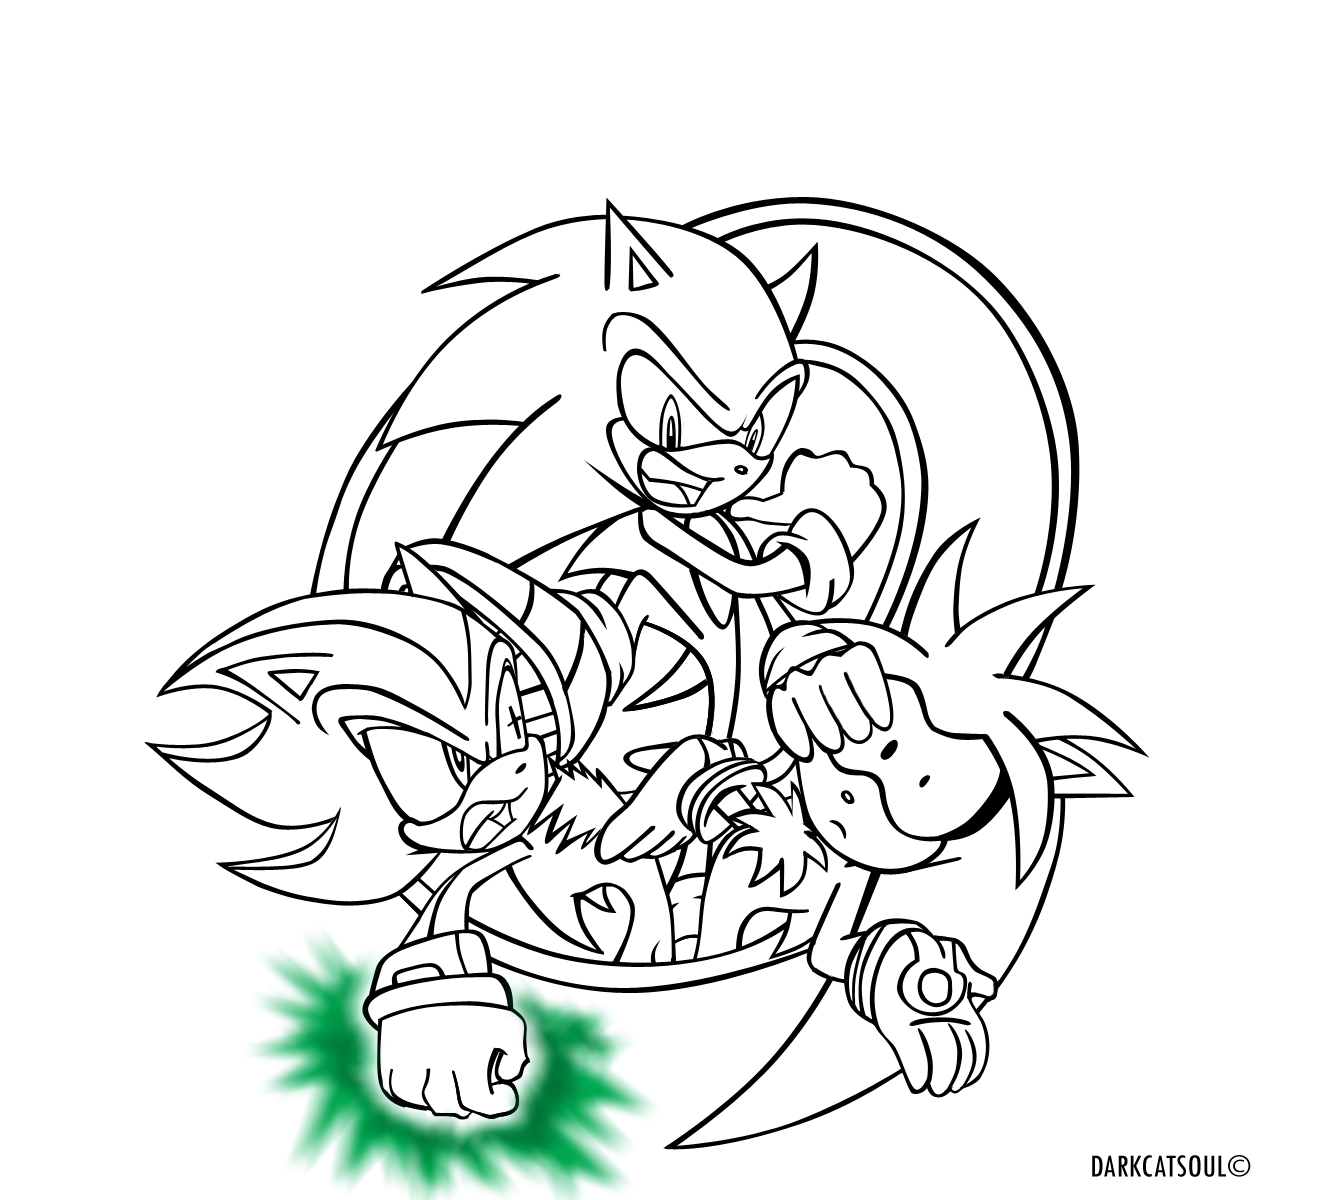 silver sonic coloring pages - photo#25